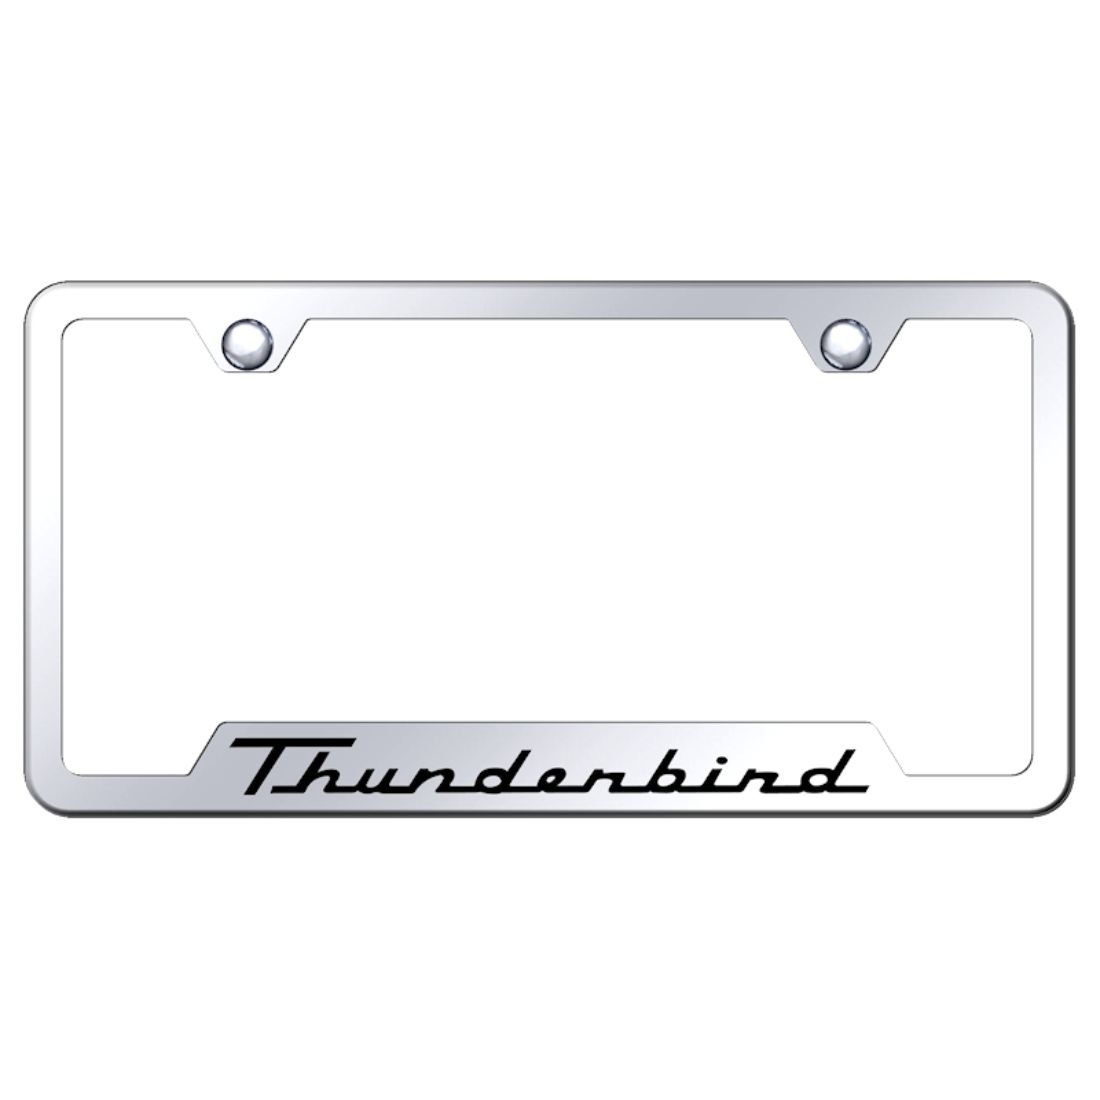 Ford Thunderbird Laser Etched Black Stainless Steel License Plate Frame